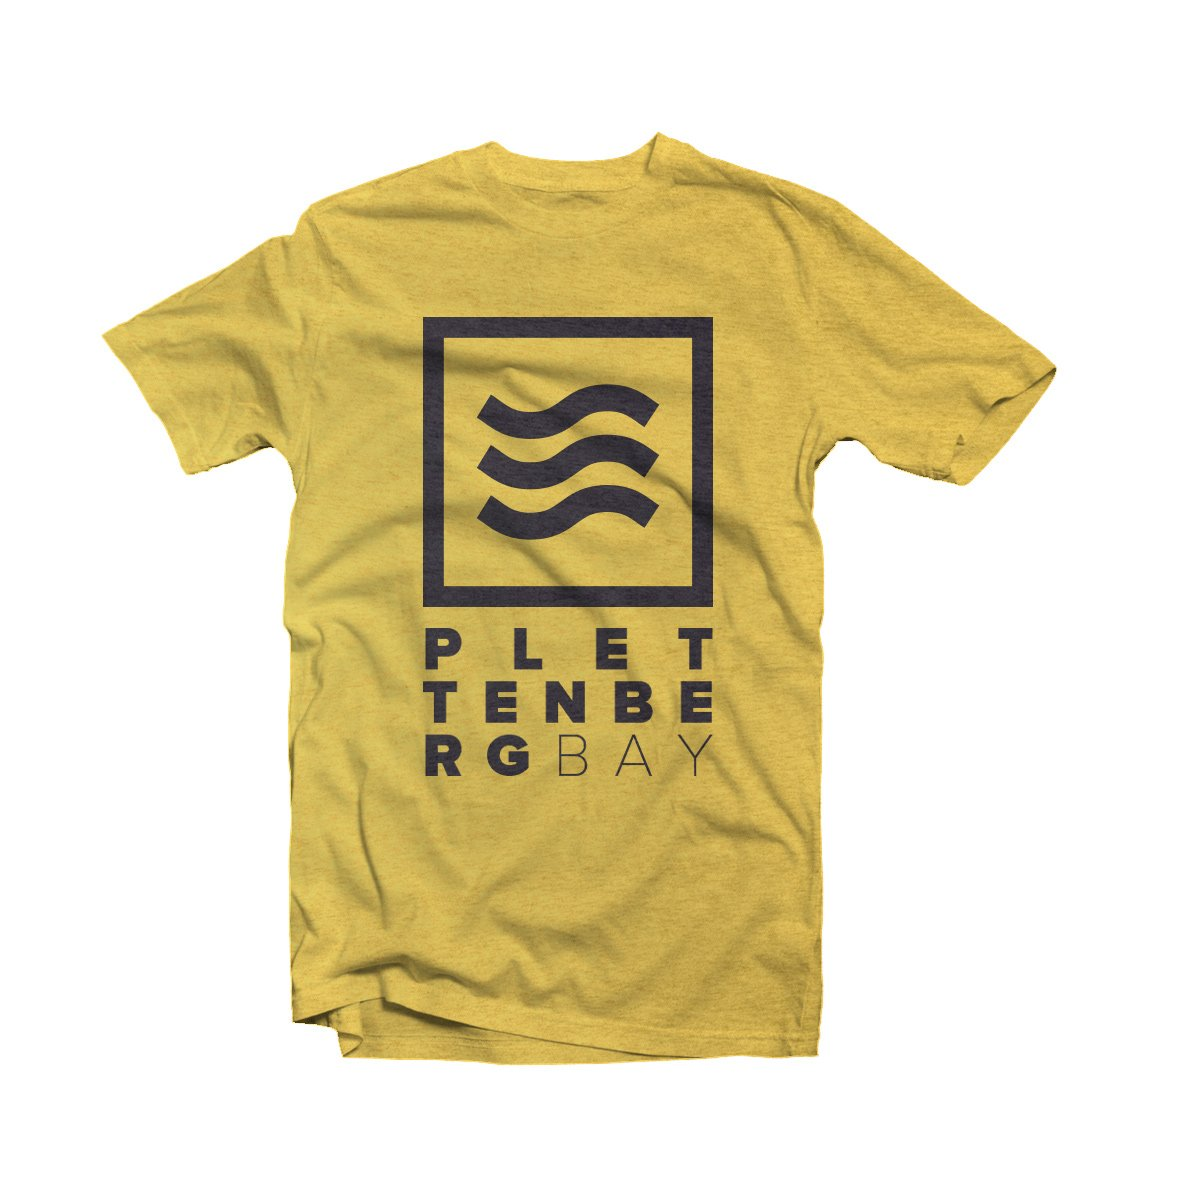 Surfing Life Mustard and Black Plettenberg Bay T-shirt Image